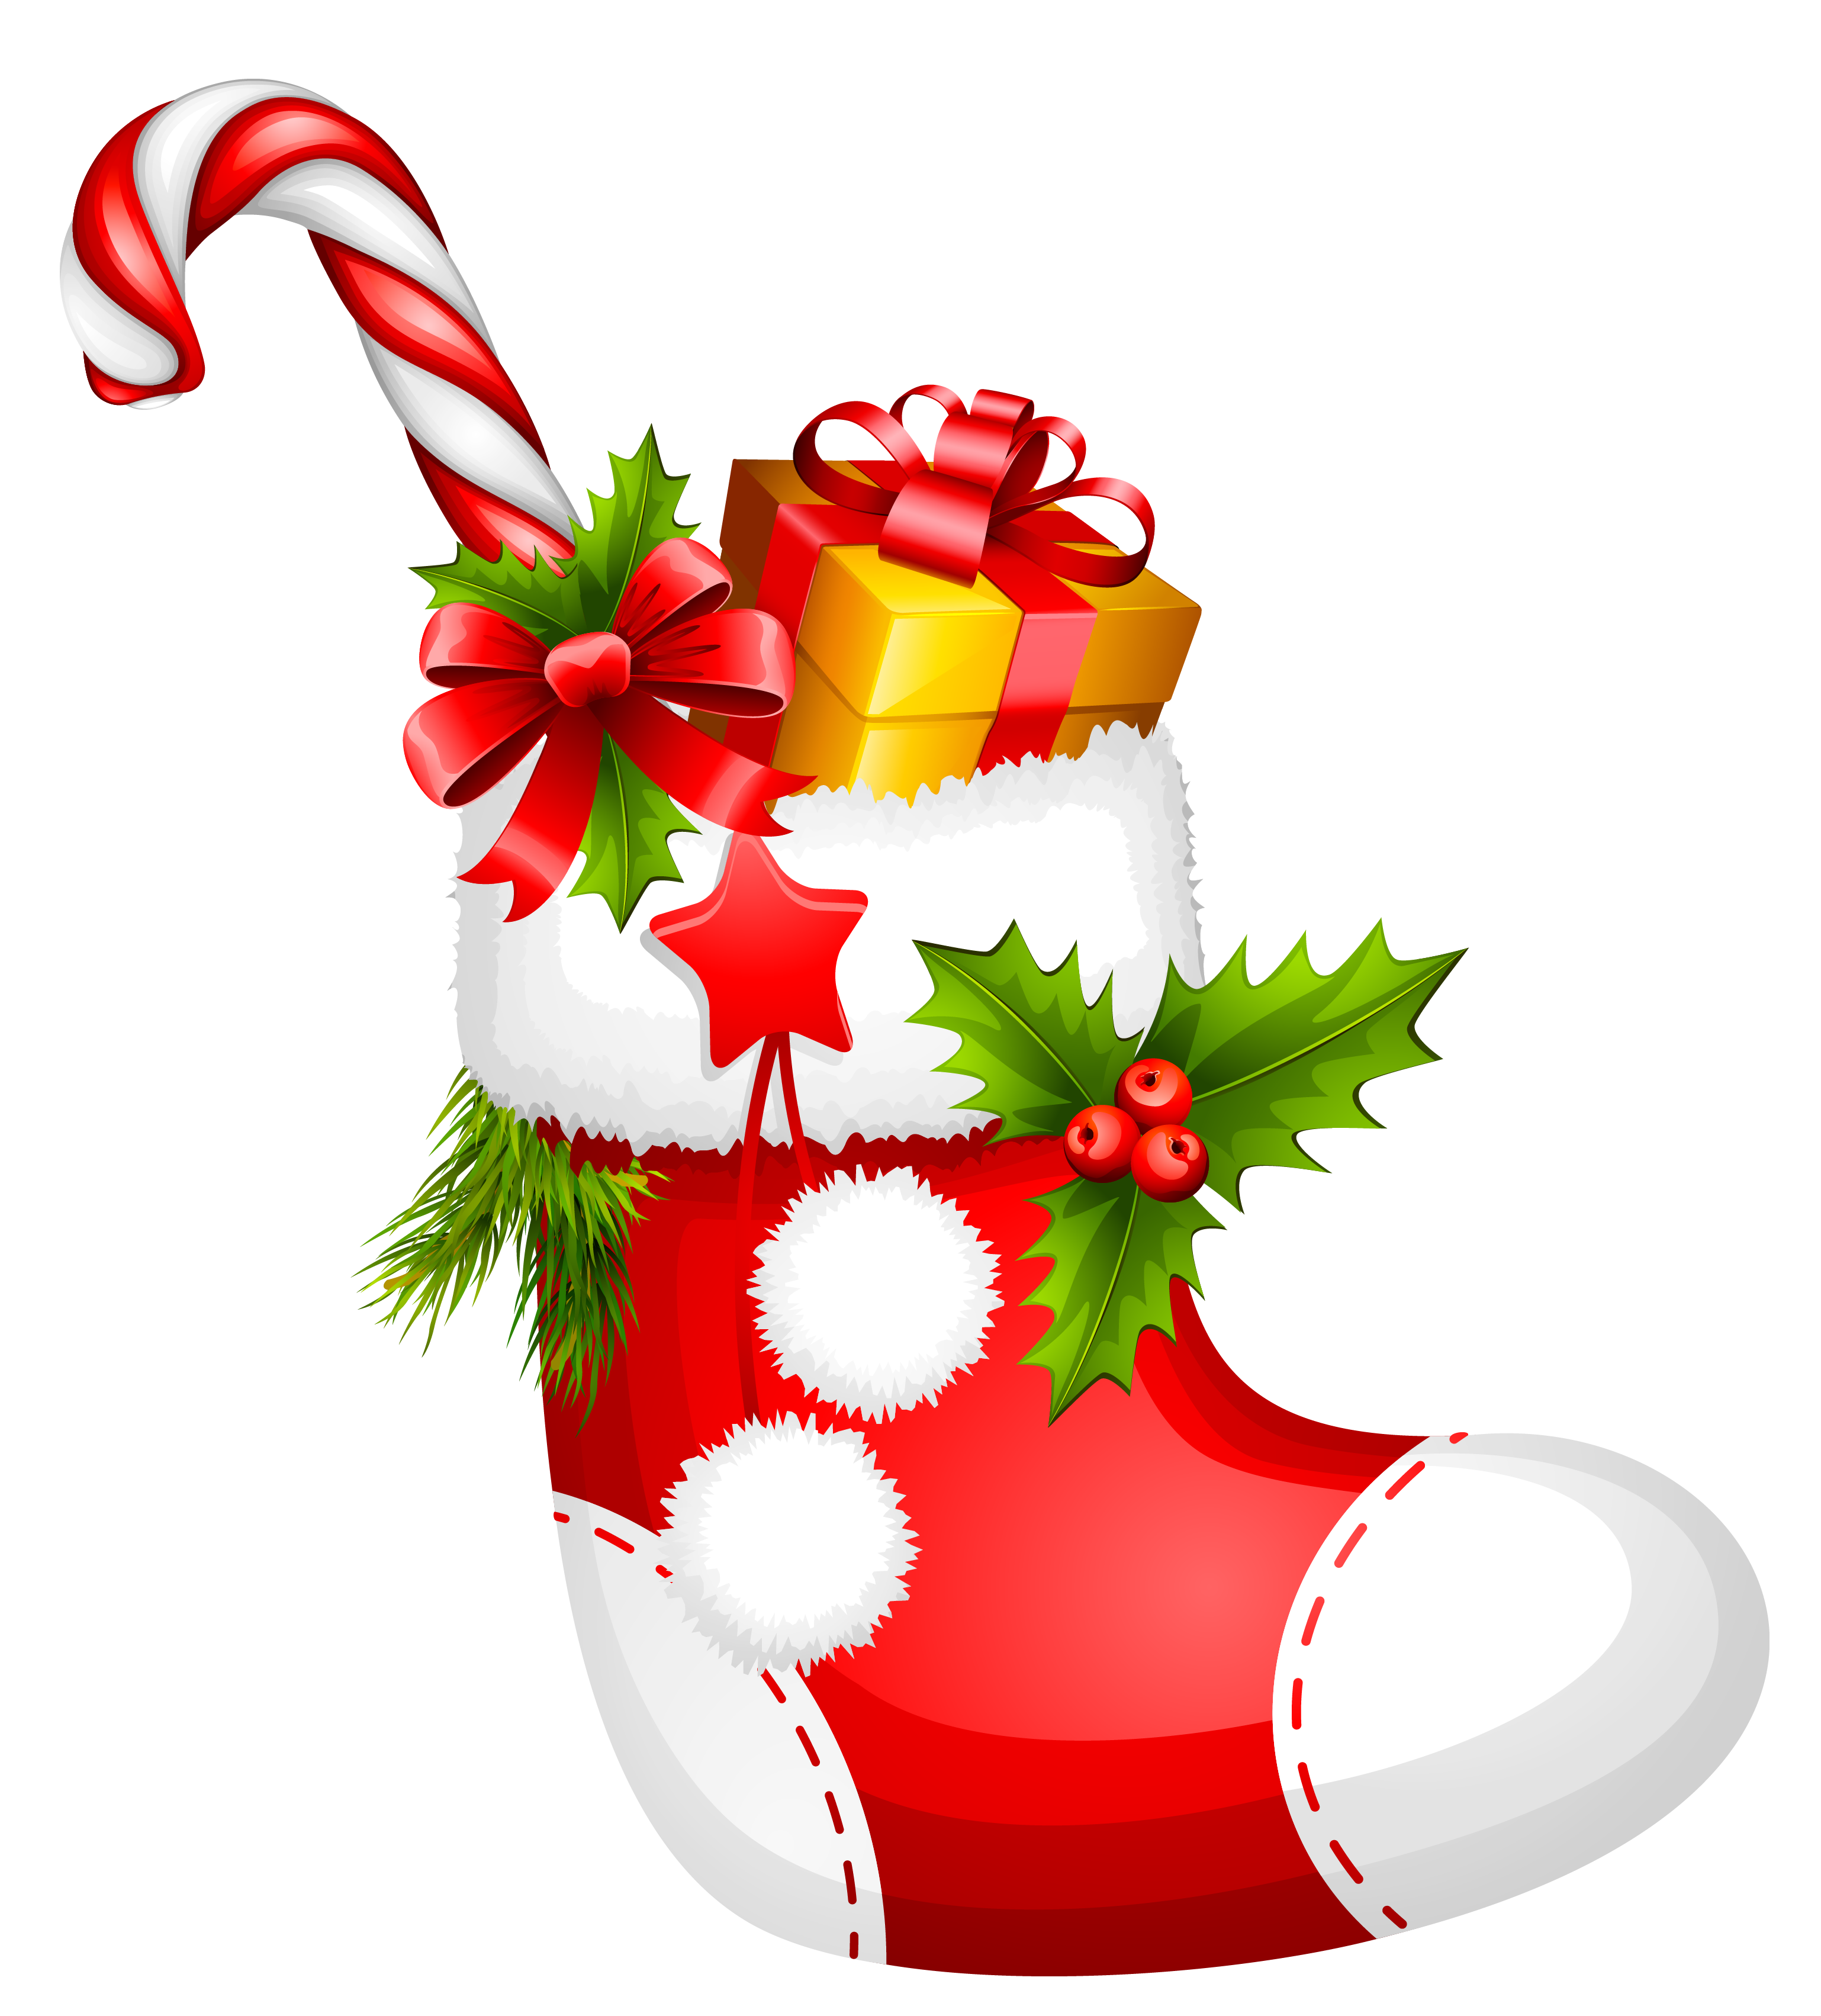 Christmas stockings png. Stocking with candy cane